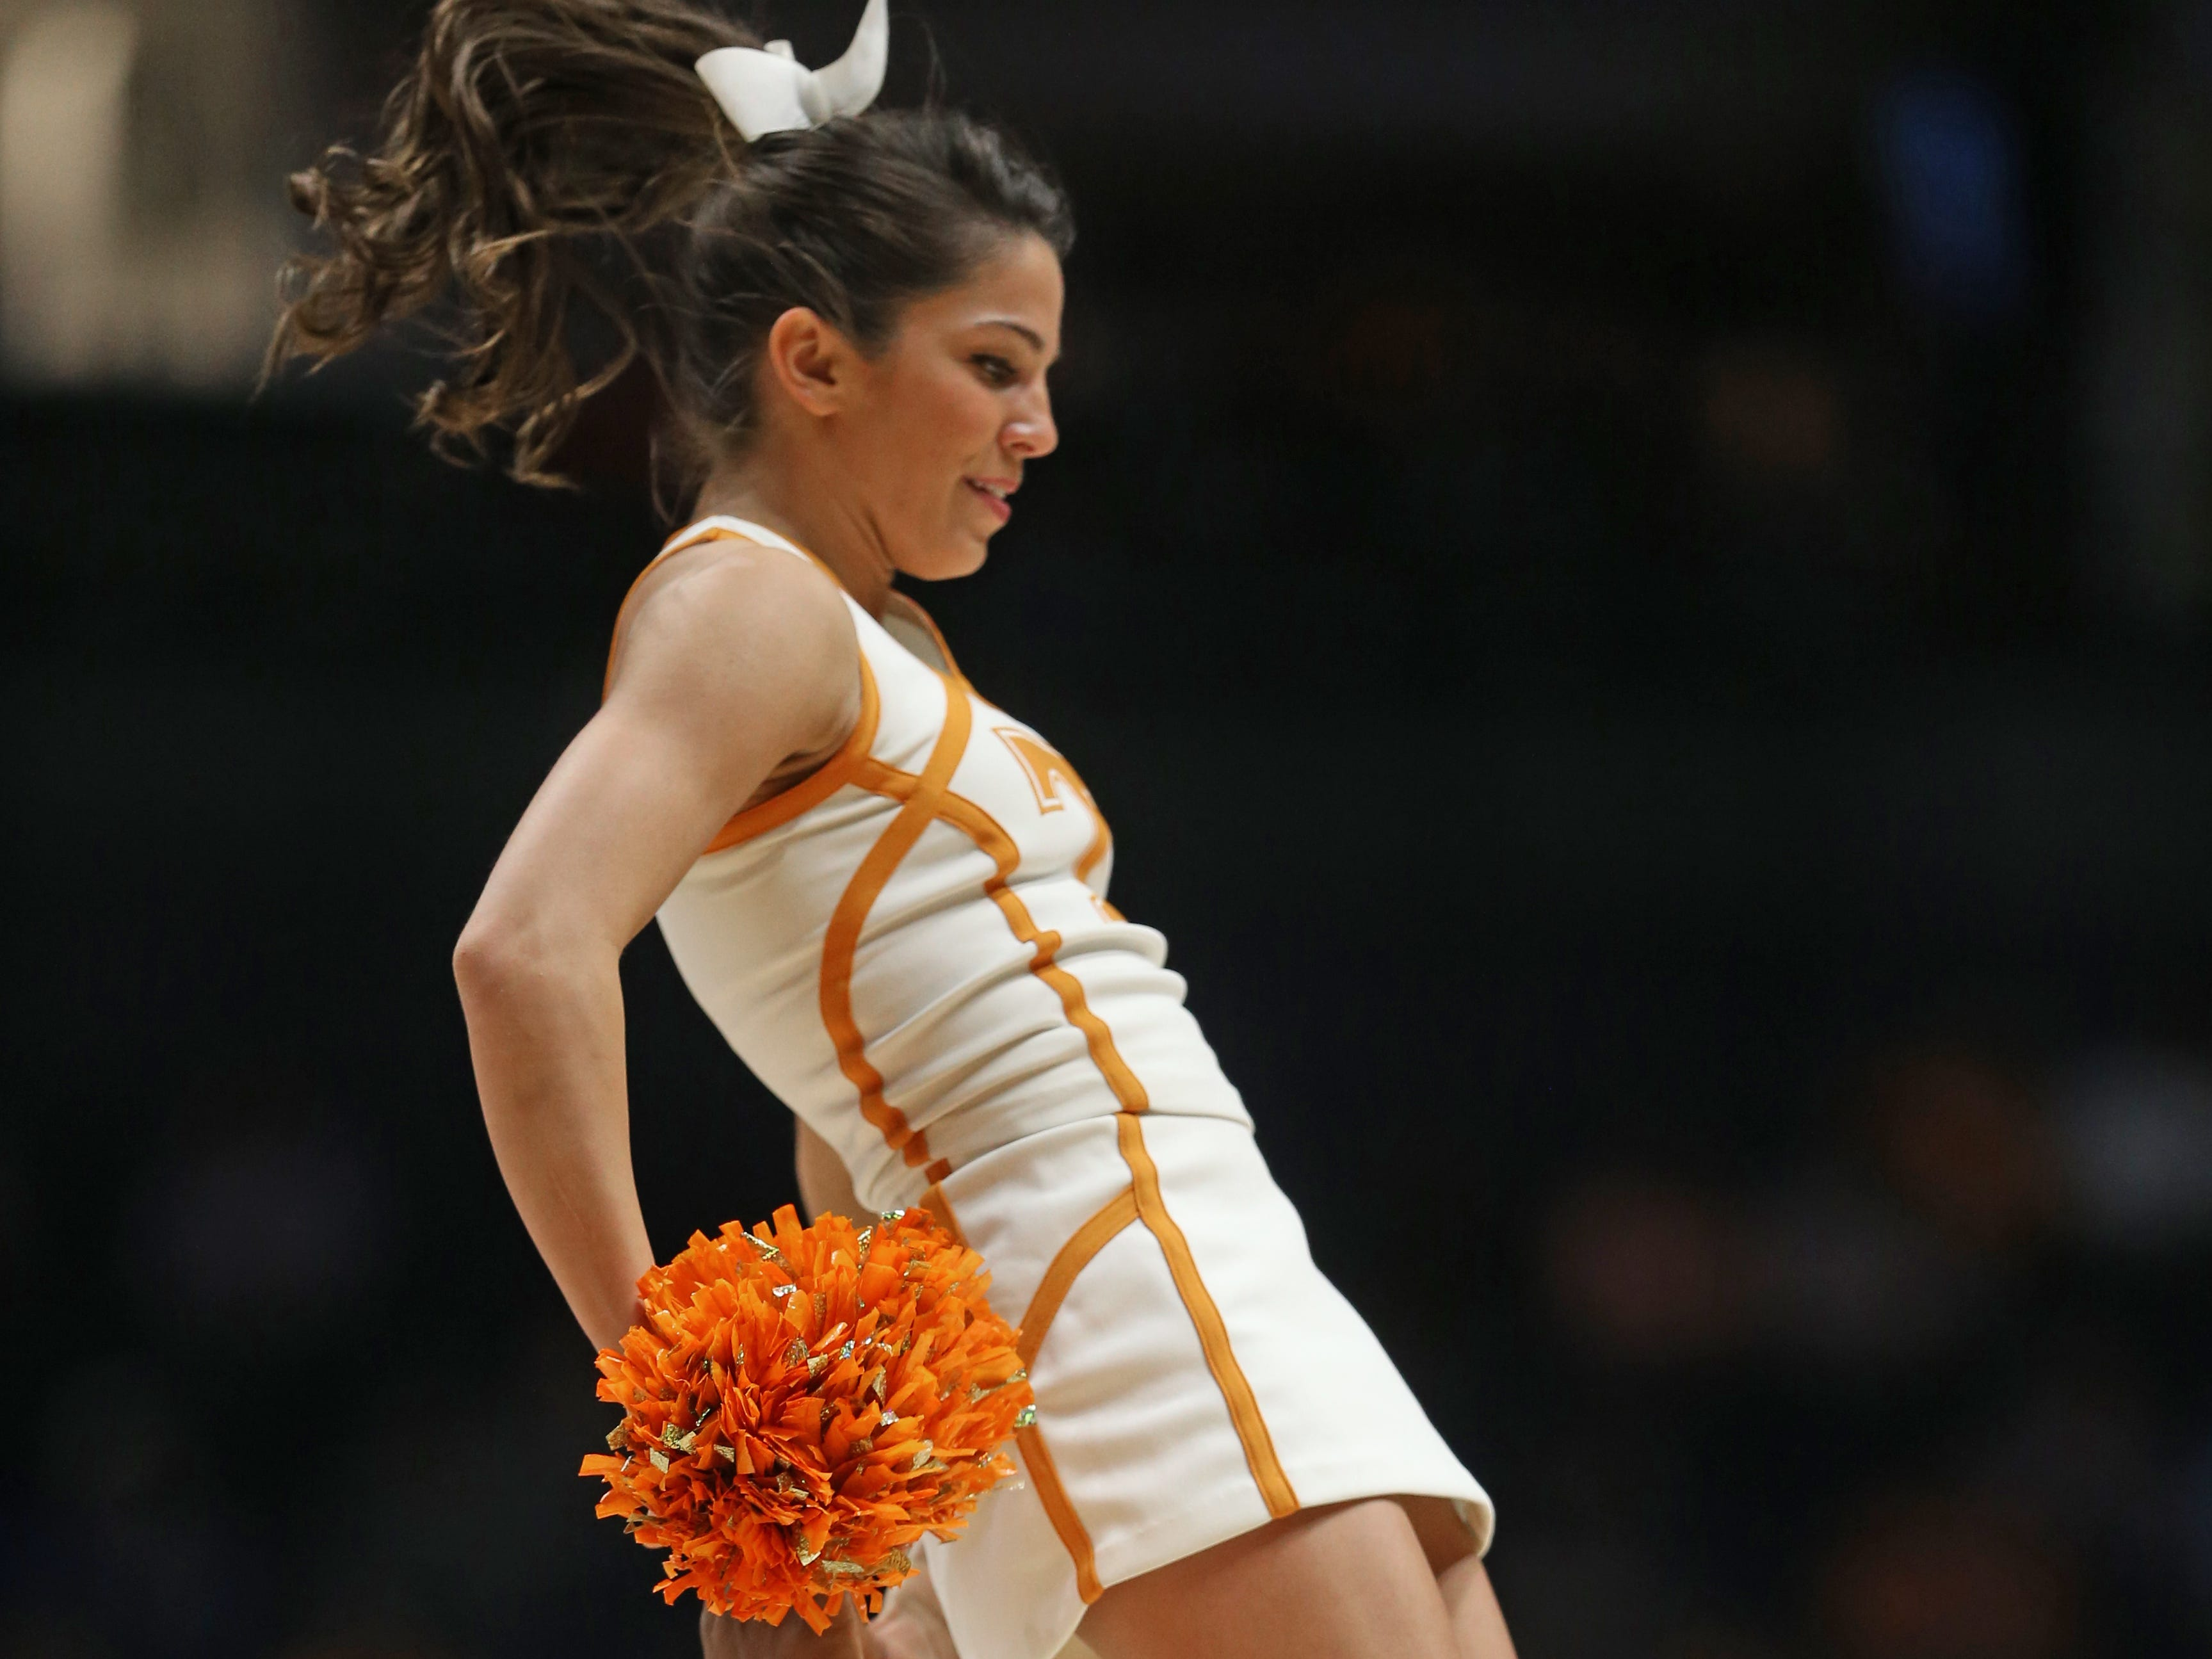 Tennessee cheerleaders perform during the first half of an NCAA college basketball game against Auburn in the Southeastern Conference tournament in Nashville, Tenn., Wednesday, March 9, 2016. (AP Photo/John Bazemore)